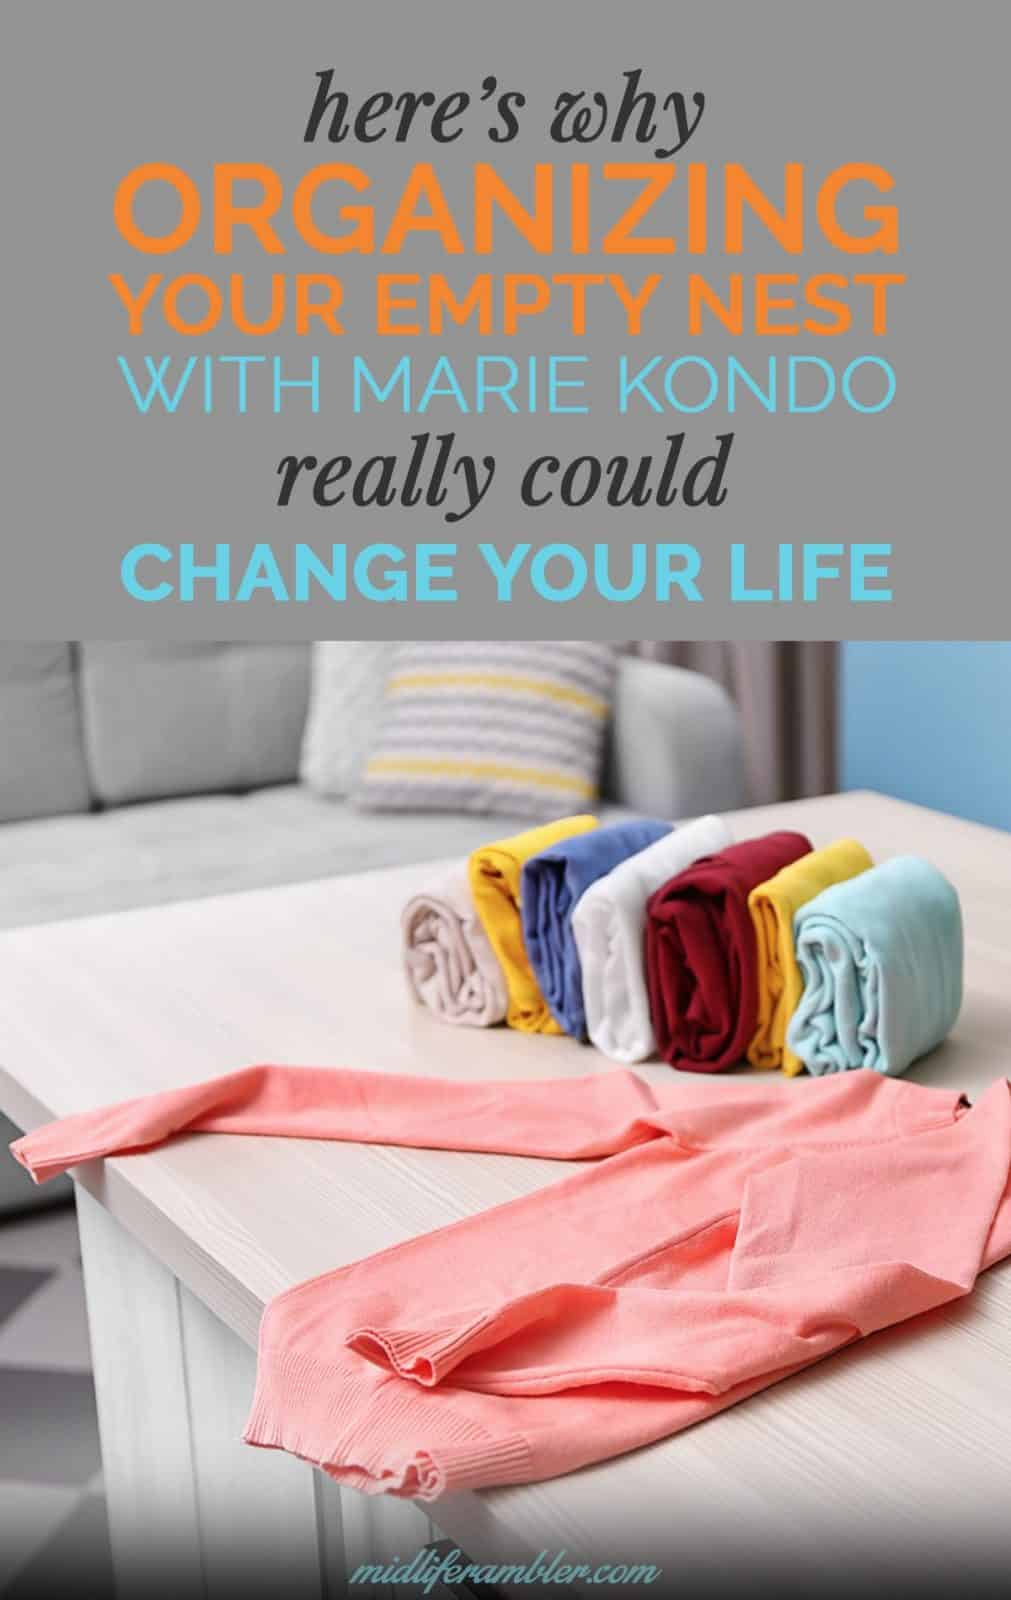 Here's Why Organizing Your Empty Nest with Marie Kondo's Konmari Method Really Could Change Your Life 4